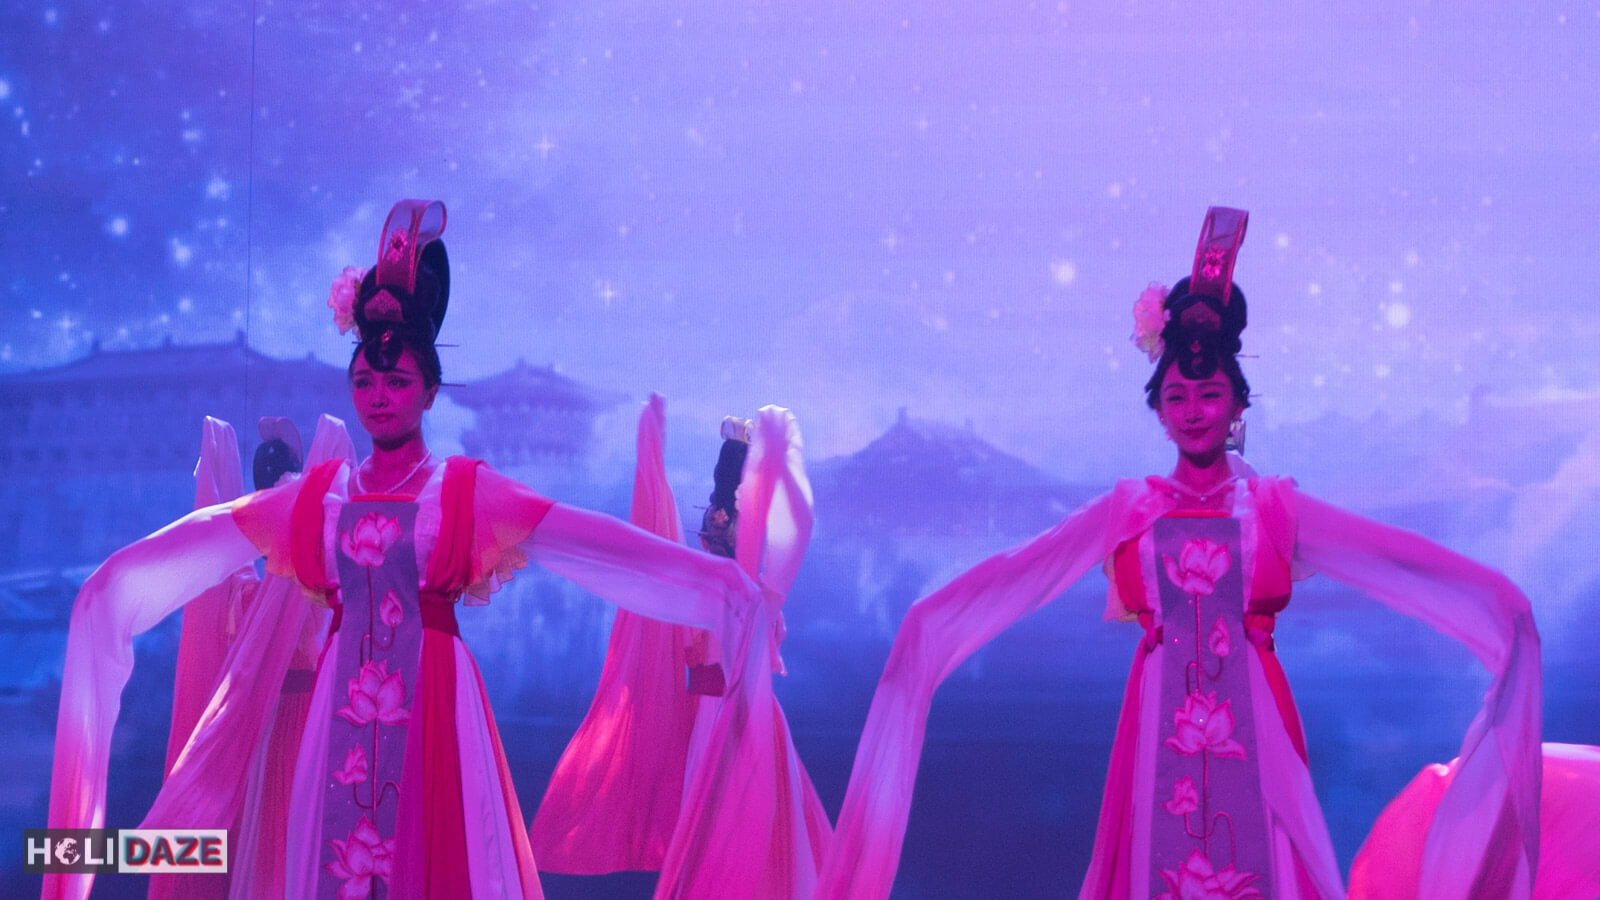 Empress of the Great Tang performance at Tang Dynasty Palace in Xi'an, China